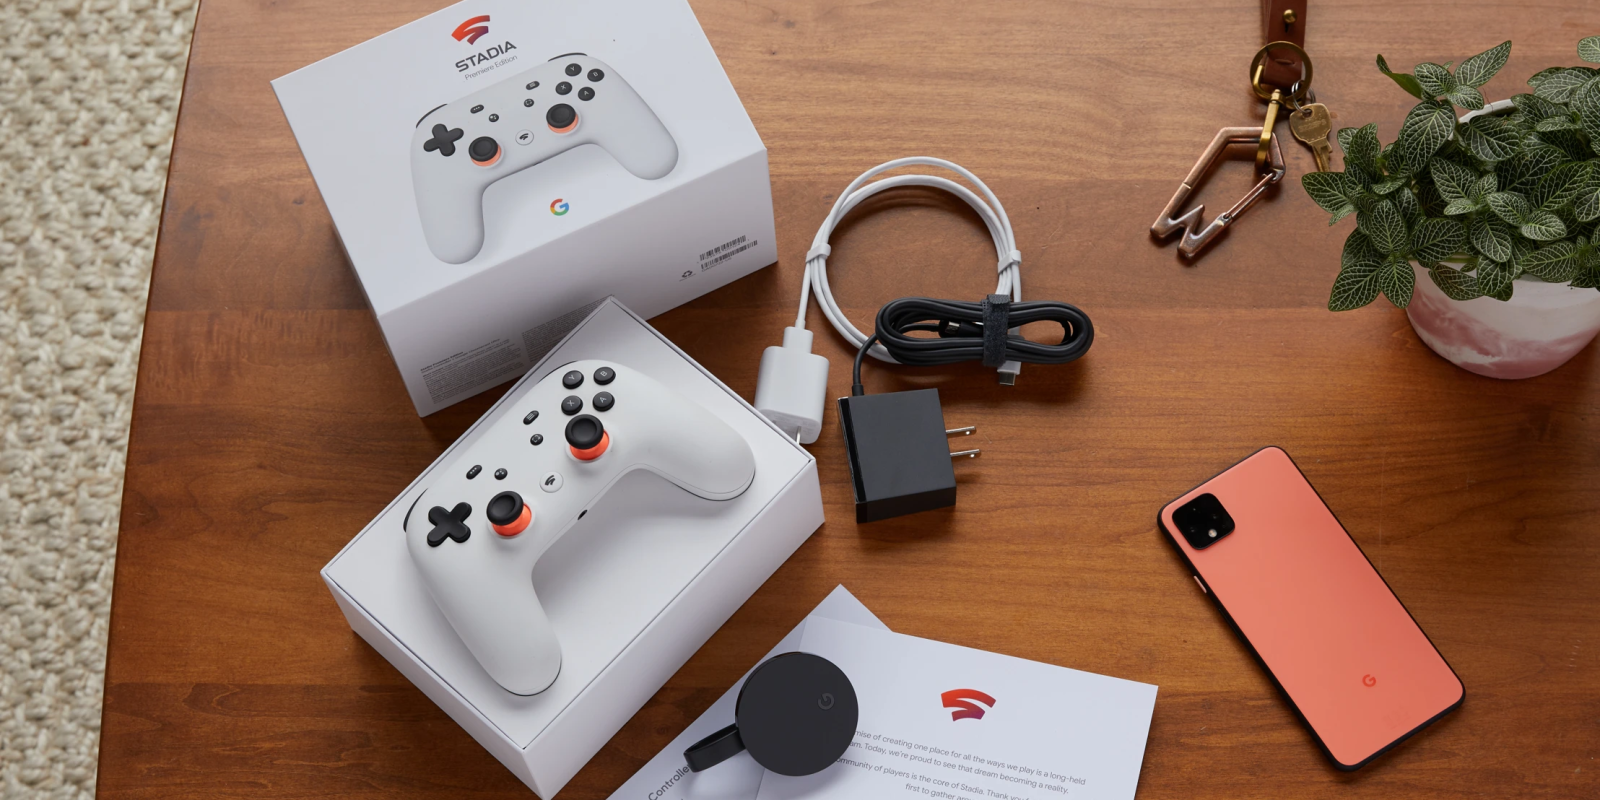 Stadia tidbits: Android app & TV UI, packaging, and mobile device support